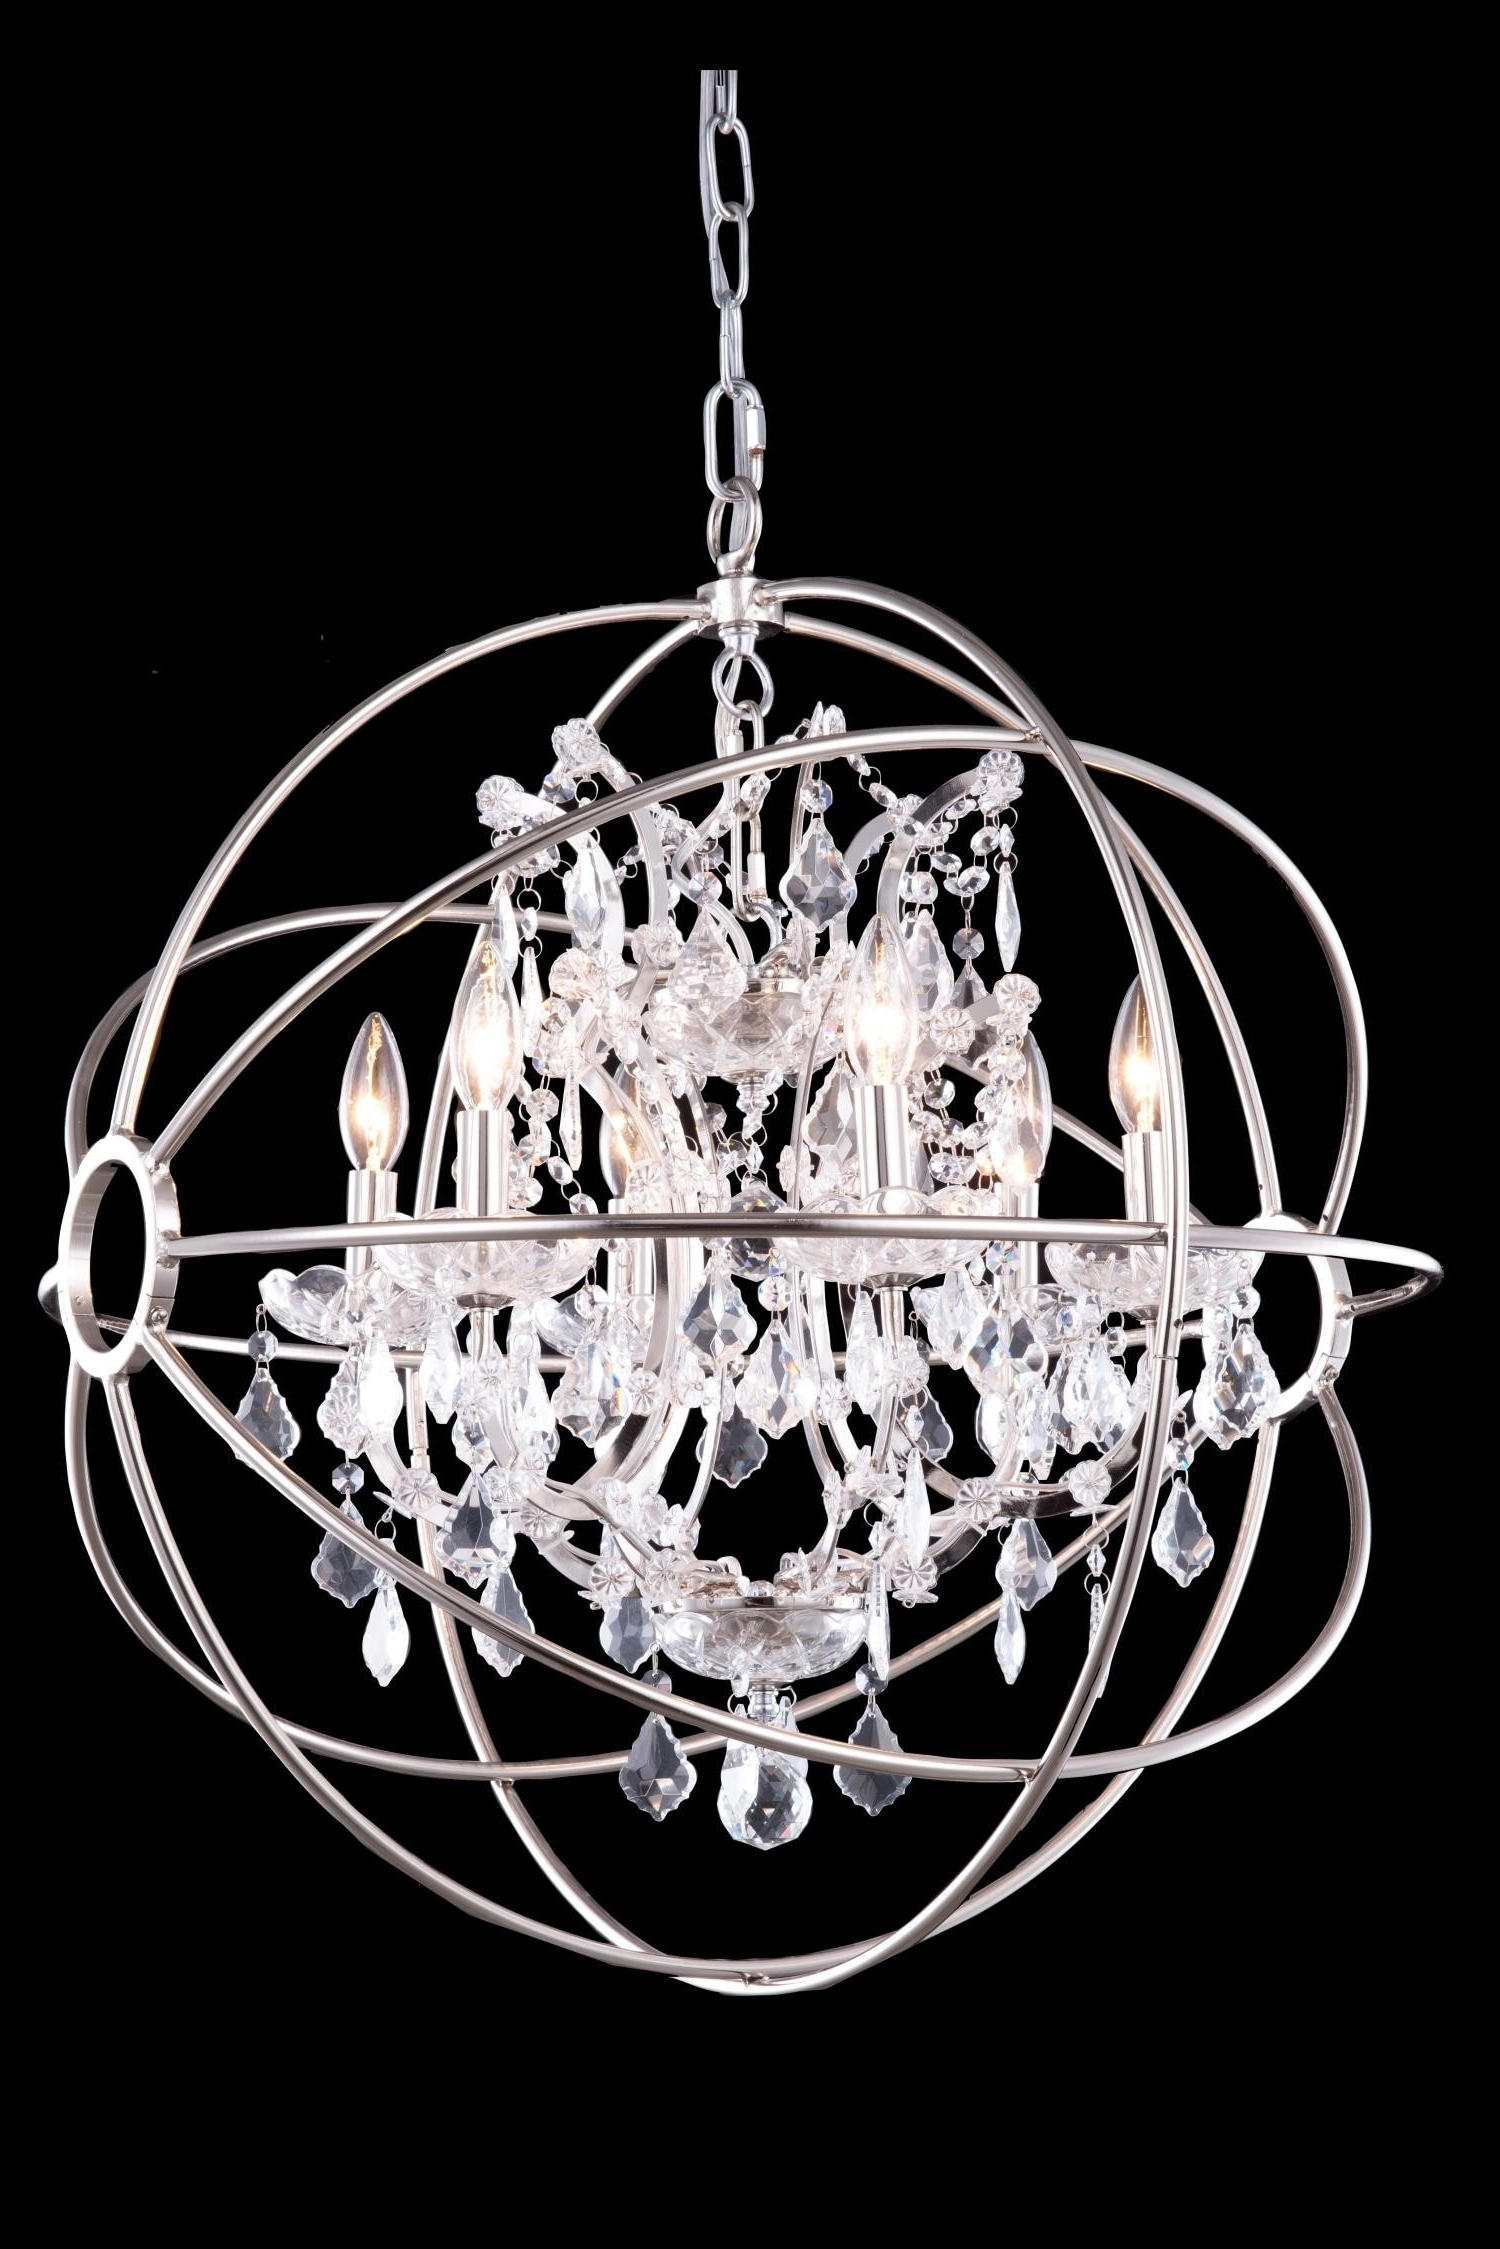 Globe Crystal Chandelier Regarding Current Chandeliers : Magnificent Large Crystal Chandeliers Elegant 12 Best (View 13 of 20)